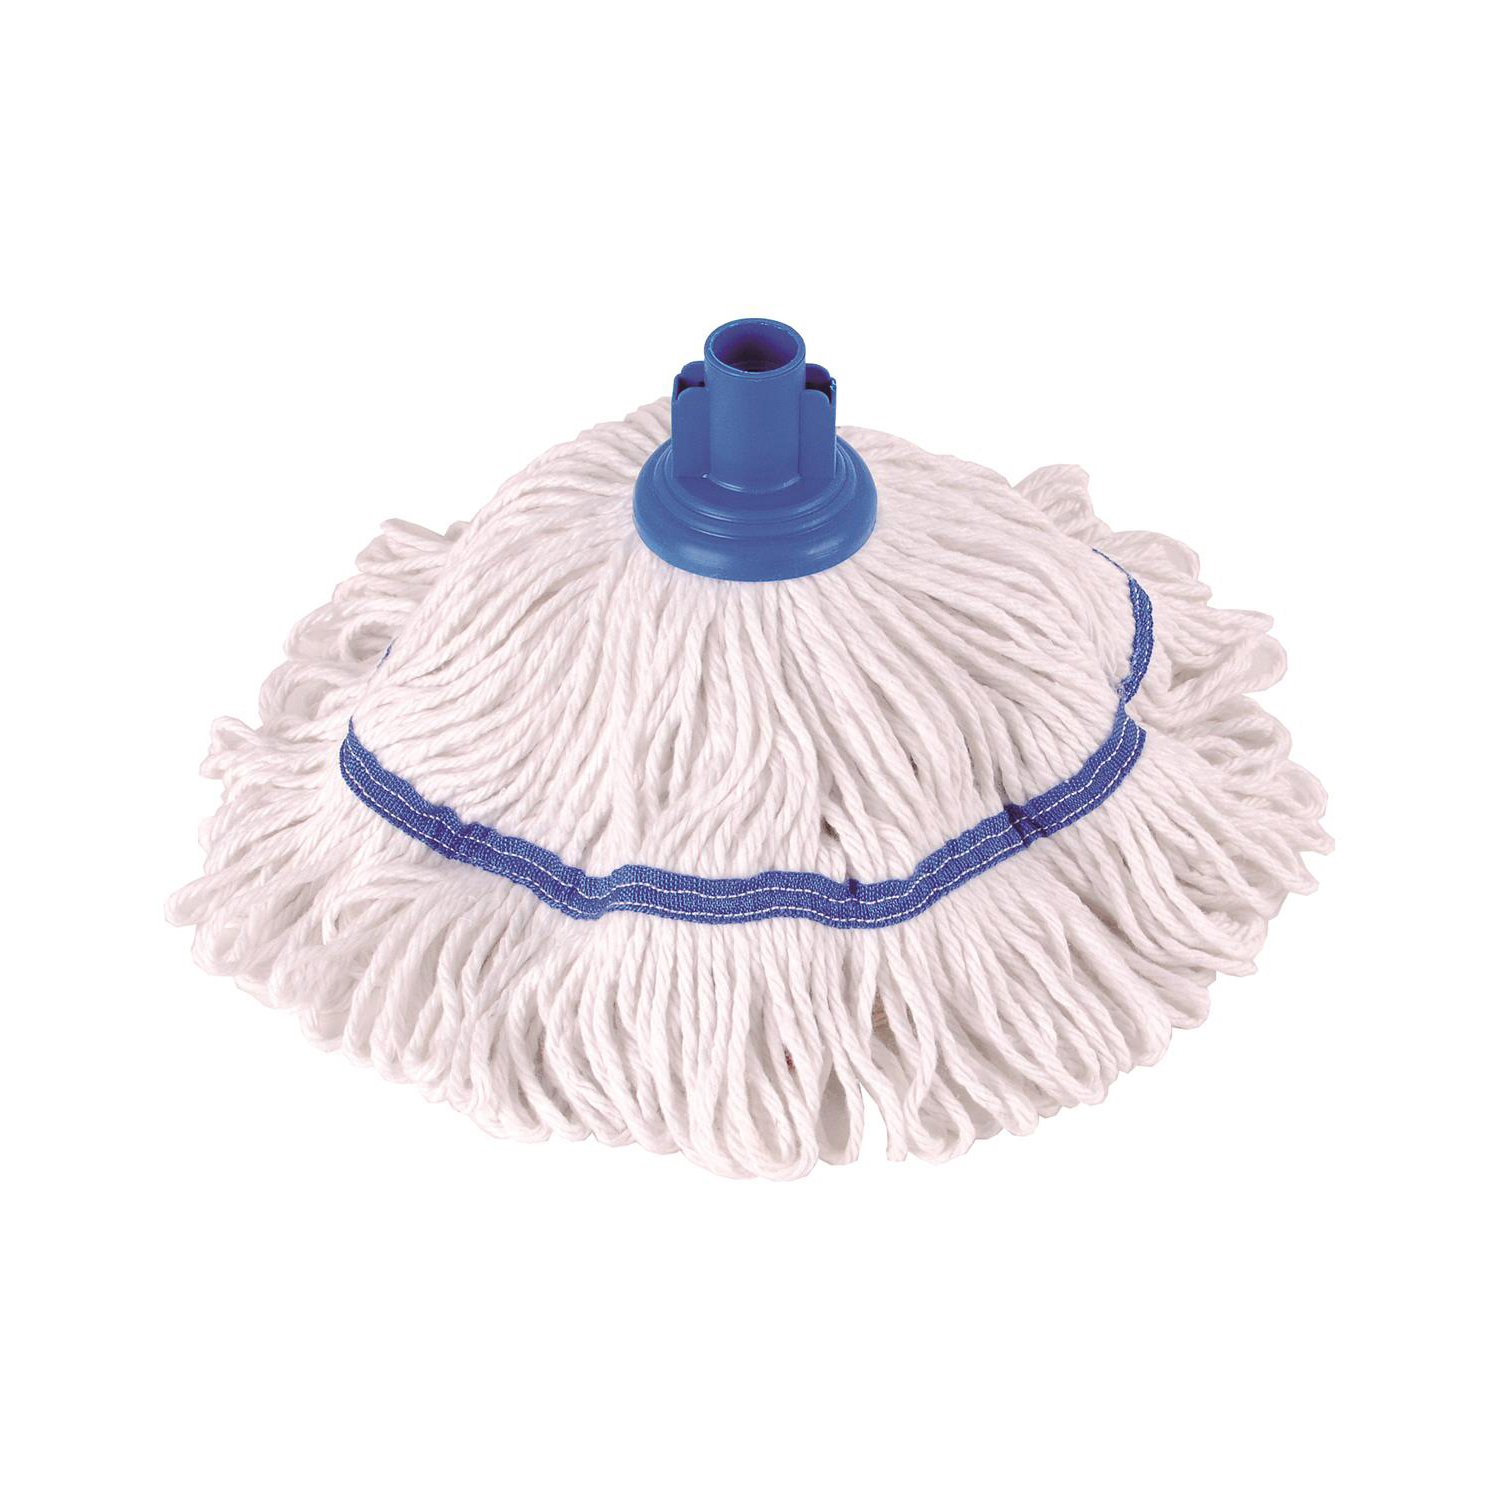 Mop heads Robert Scott & Sons Hygiemix T1 Socket Cotton & Synthetic Colour-coded Mop 250g Blue Ref MHH250B